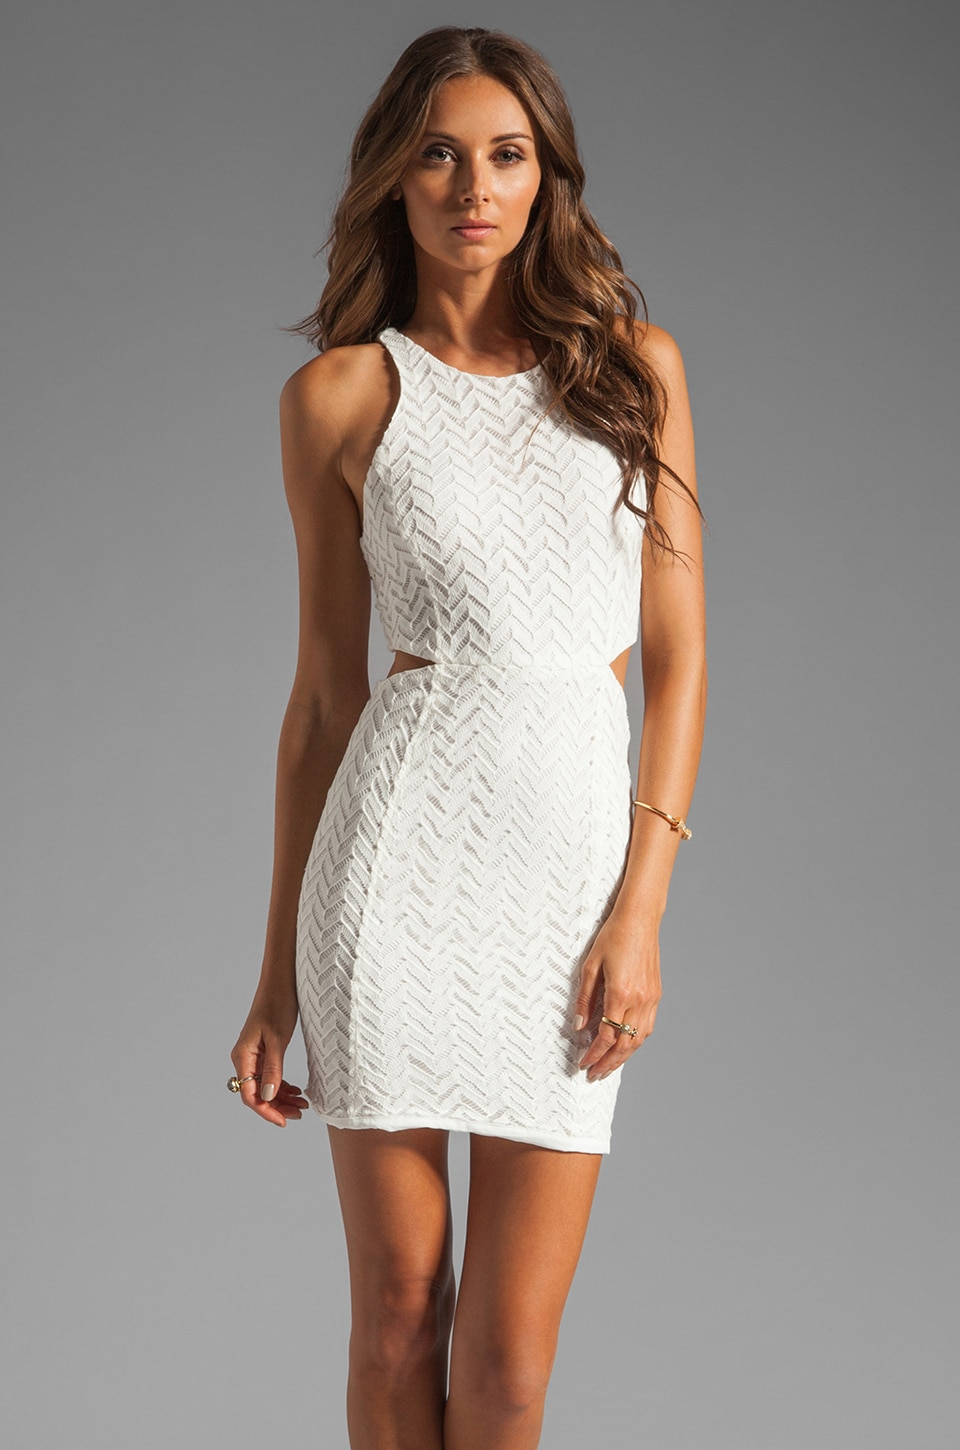 Dolce Vita Pernita Dress in Cream